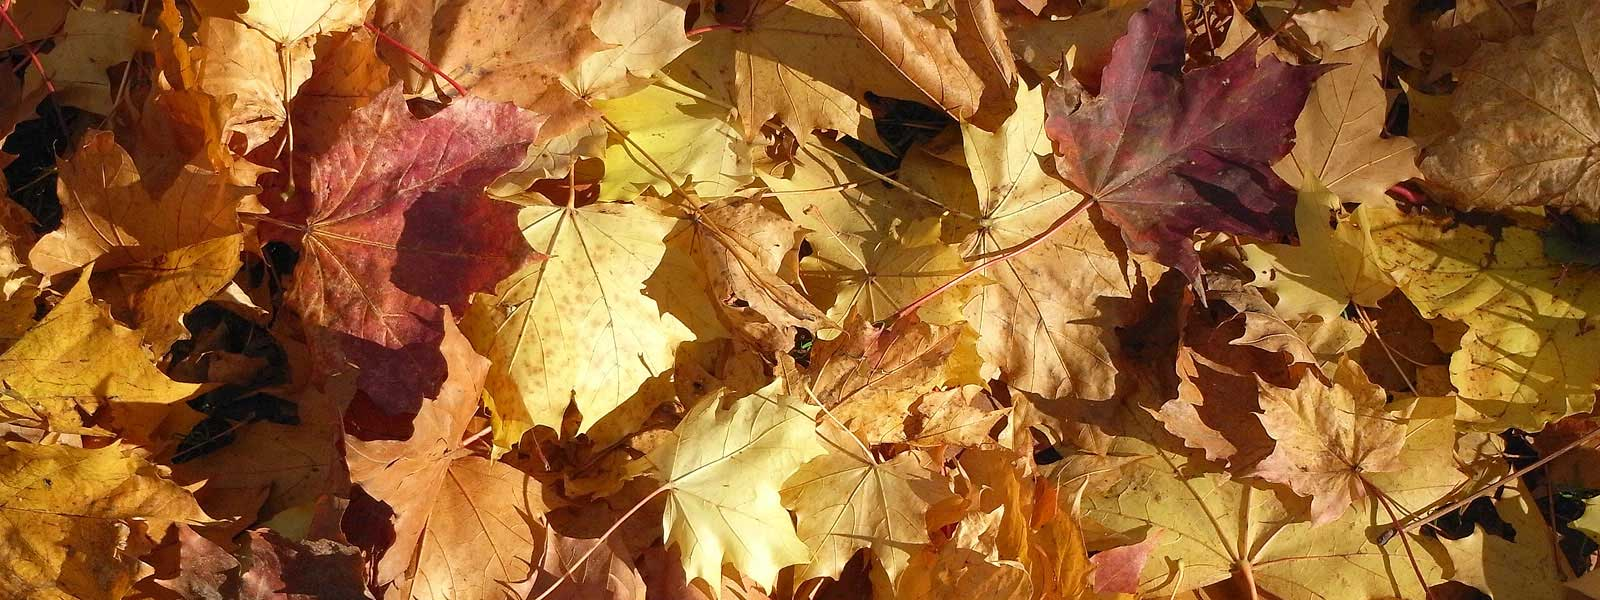 banner image with autumn leaves